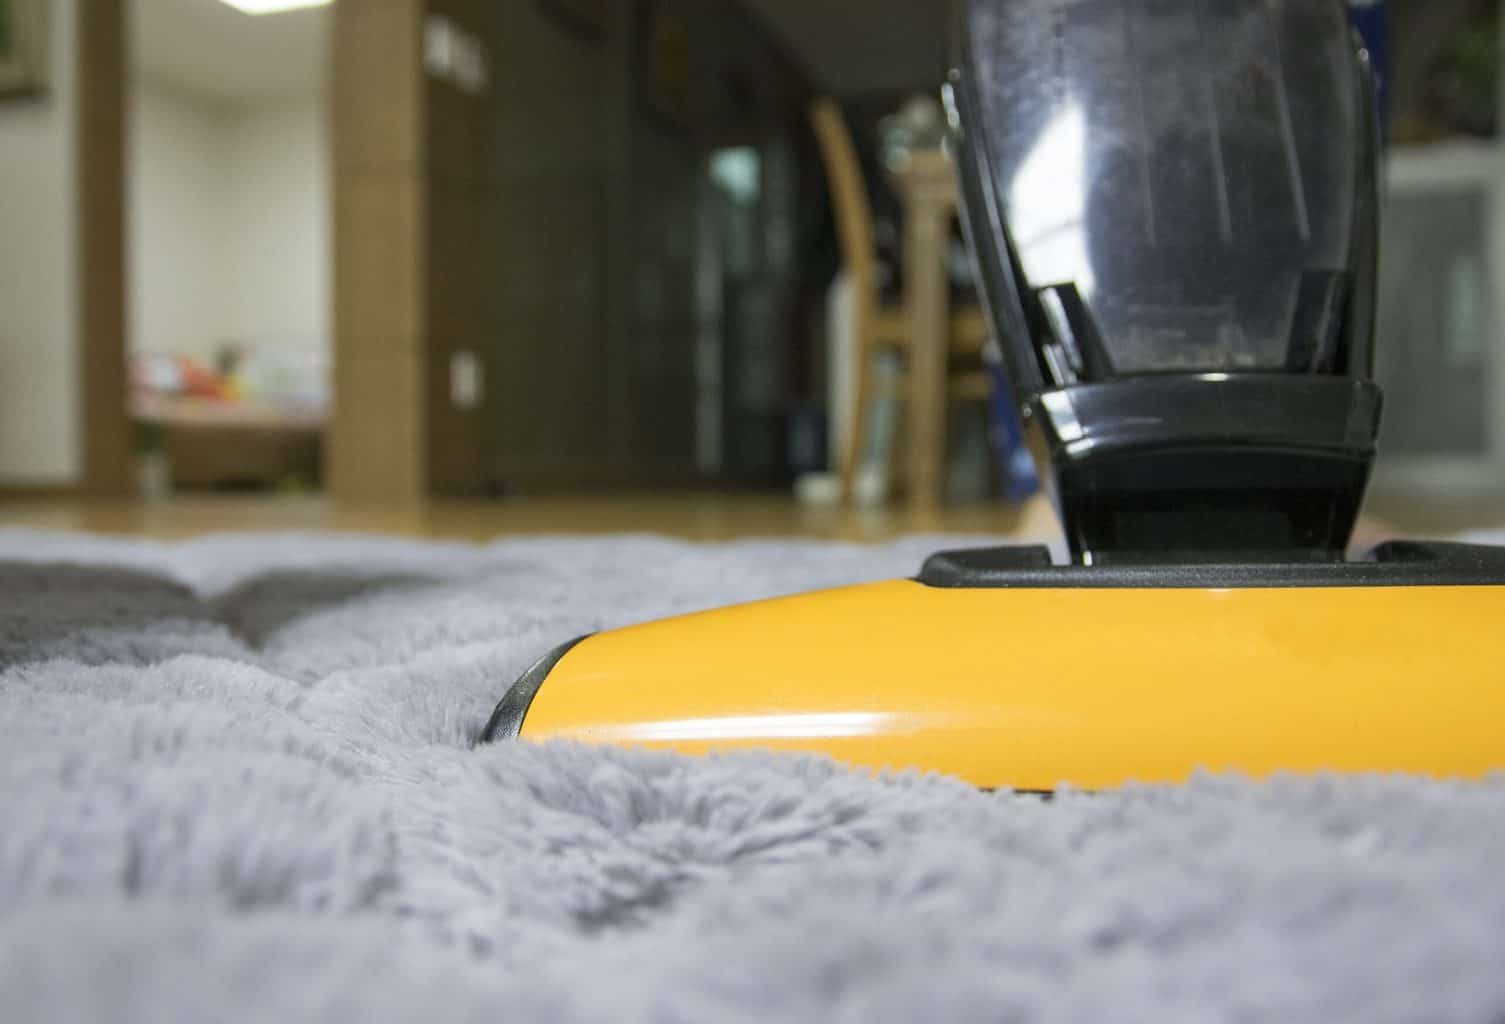 A close up shot of a yellow vacuum cleaner on a rug